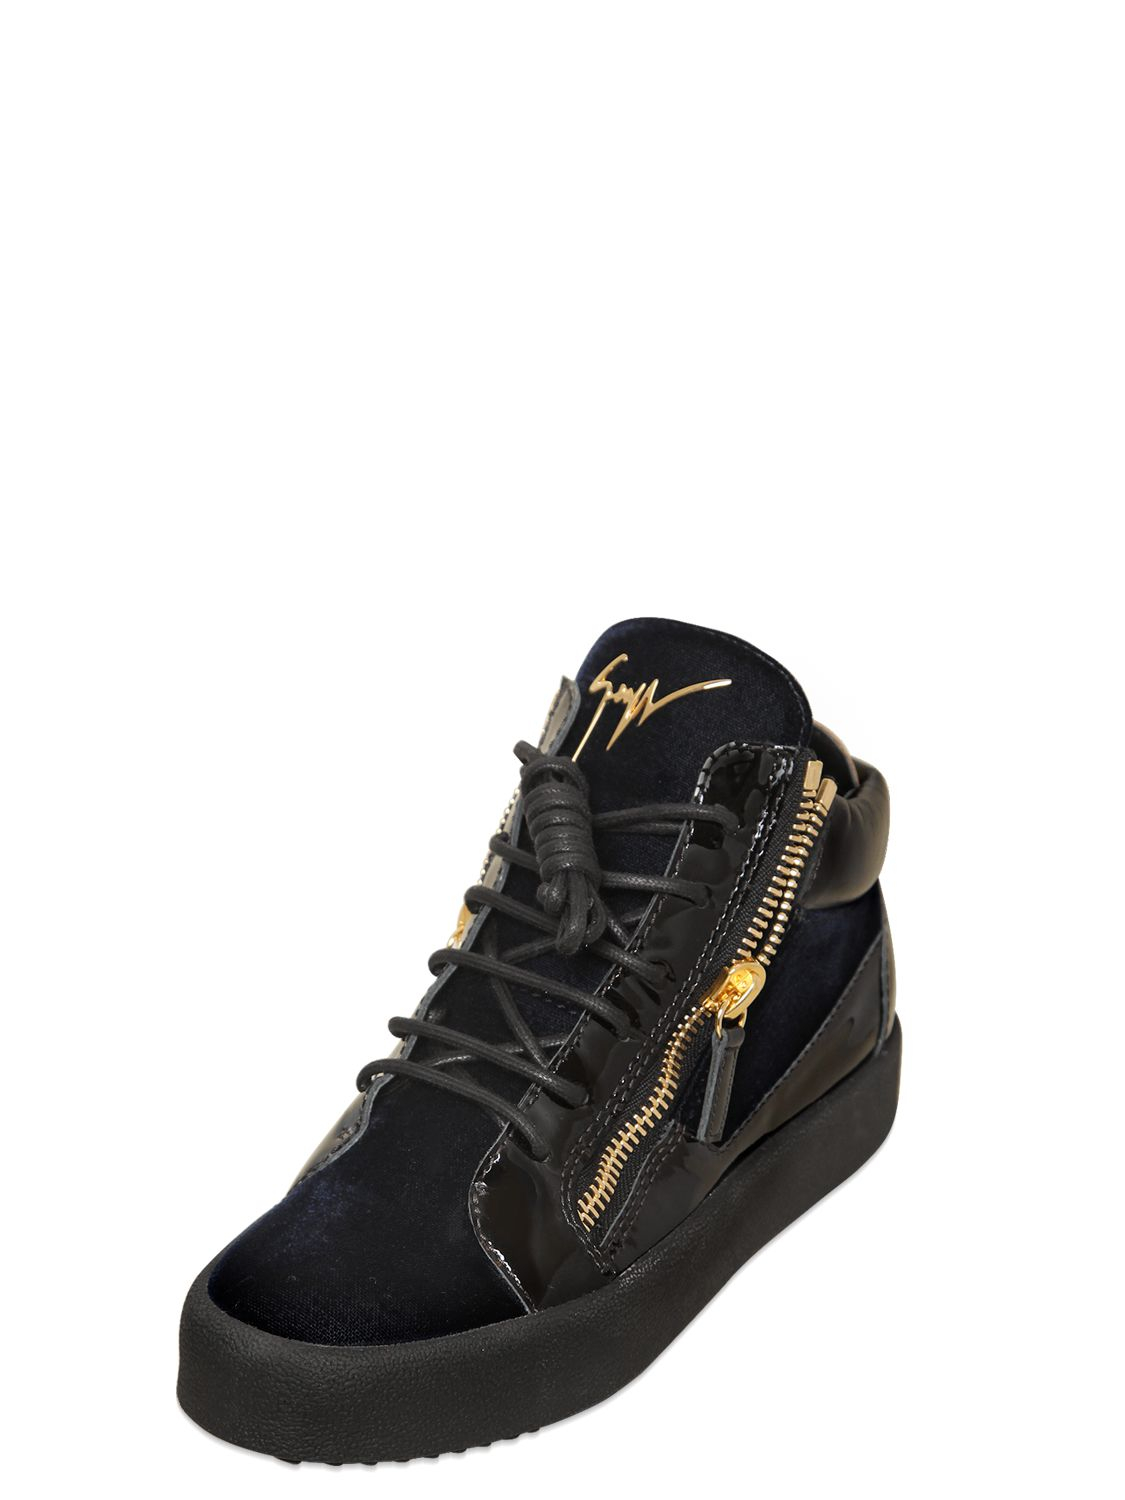 Giuseppe Zanotti Velvet mid-top sneaker KRISS Pick A Best Sale High Quality Fast Delivery Cheap Price n1LnzQcT